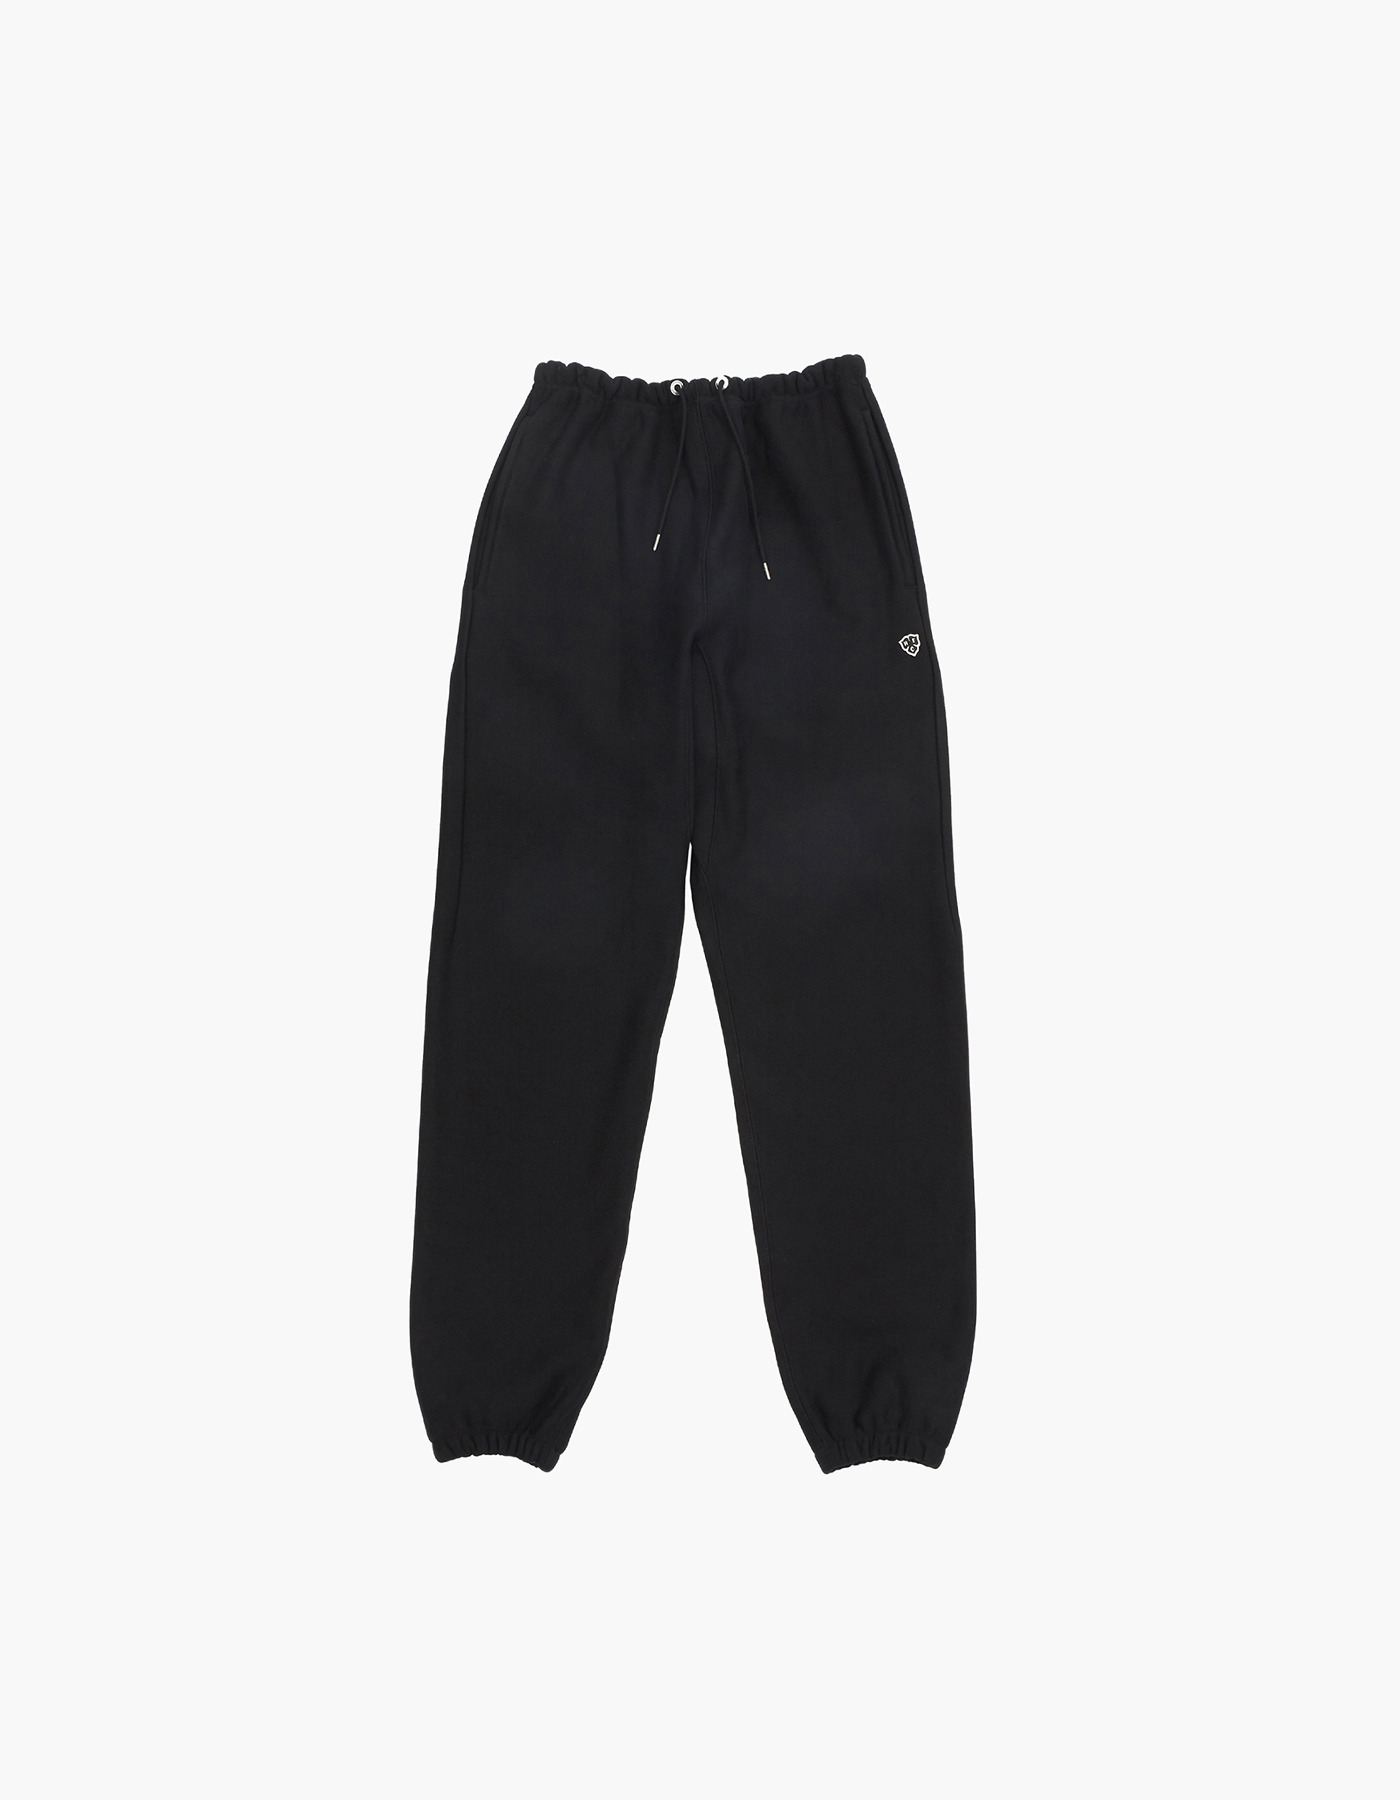 HELINOX X HERITAGEFLOSS 221 REVERSE SWEATPANTS / BLACK